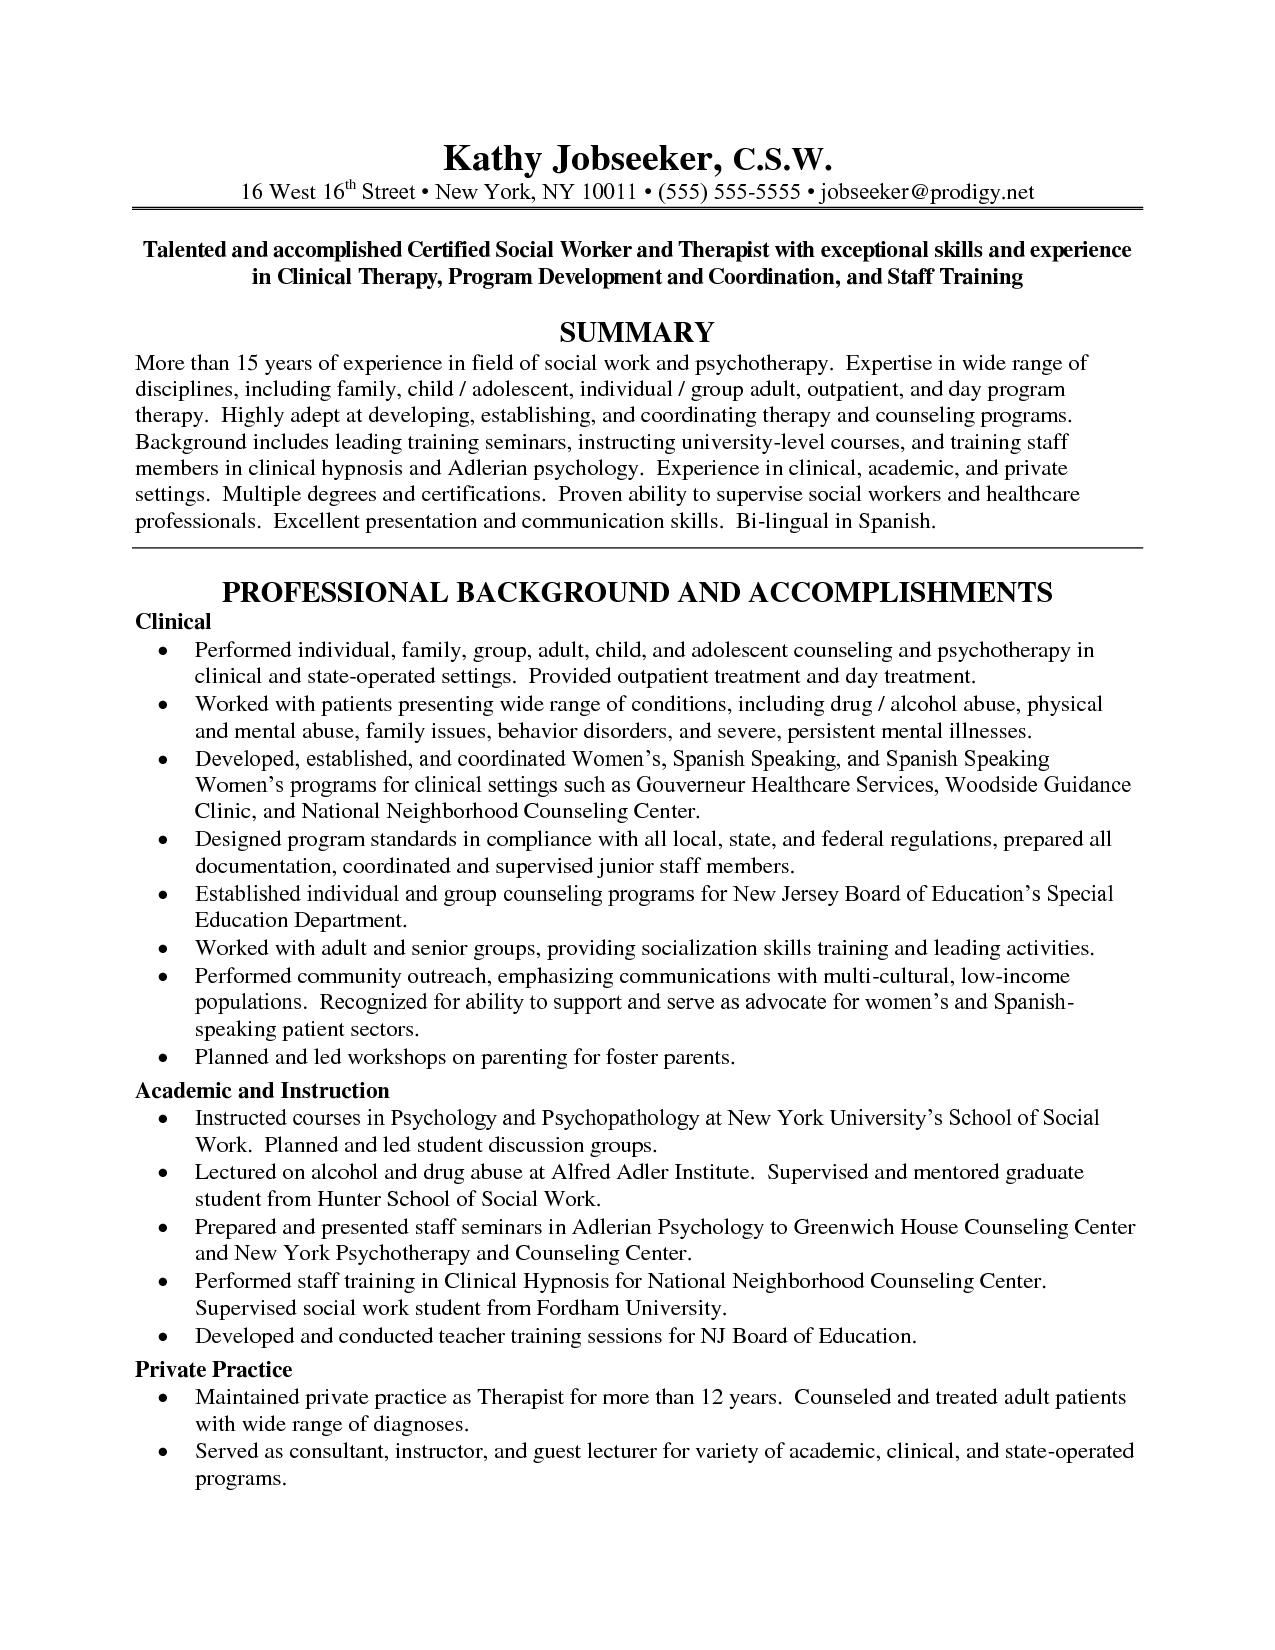 Sample Of Social Worker Resume Social Work Resume Examples Social Work Resume With License Social .